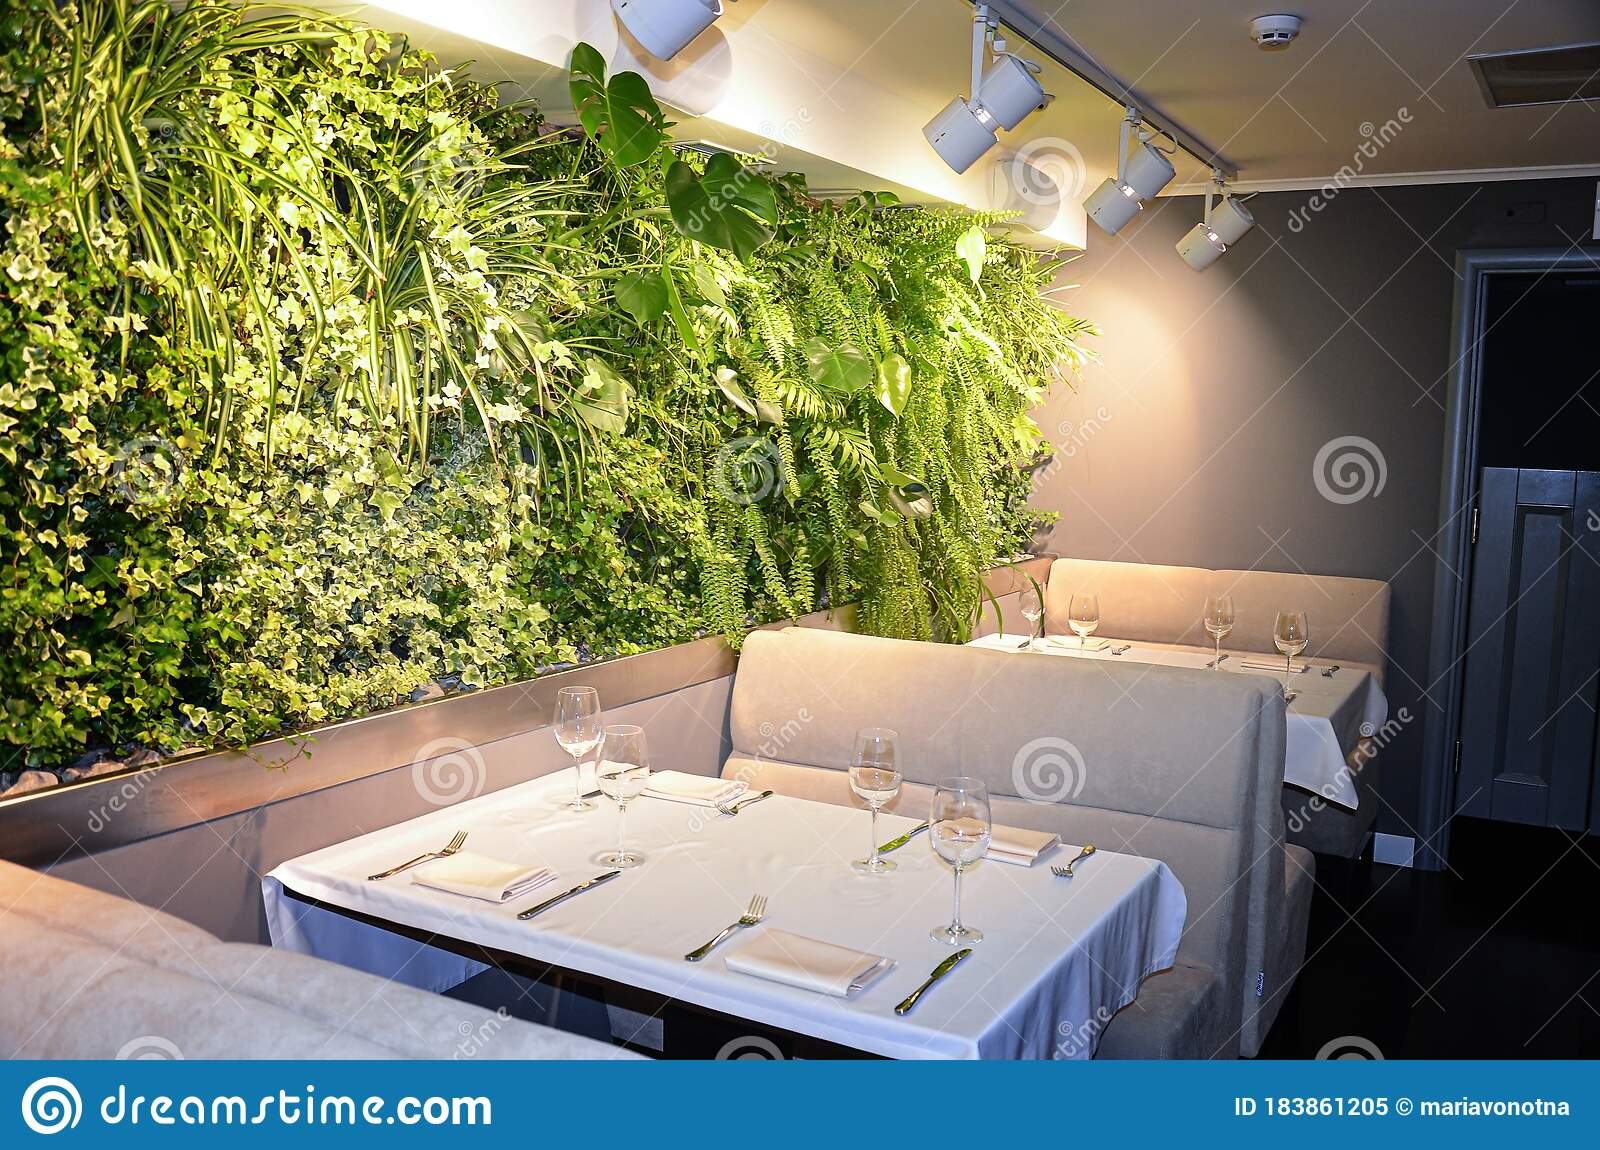 25 222 Cafe Wall Design Photos Free Royalty Free Stock Photos From Dreamstime